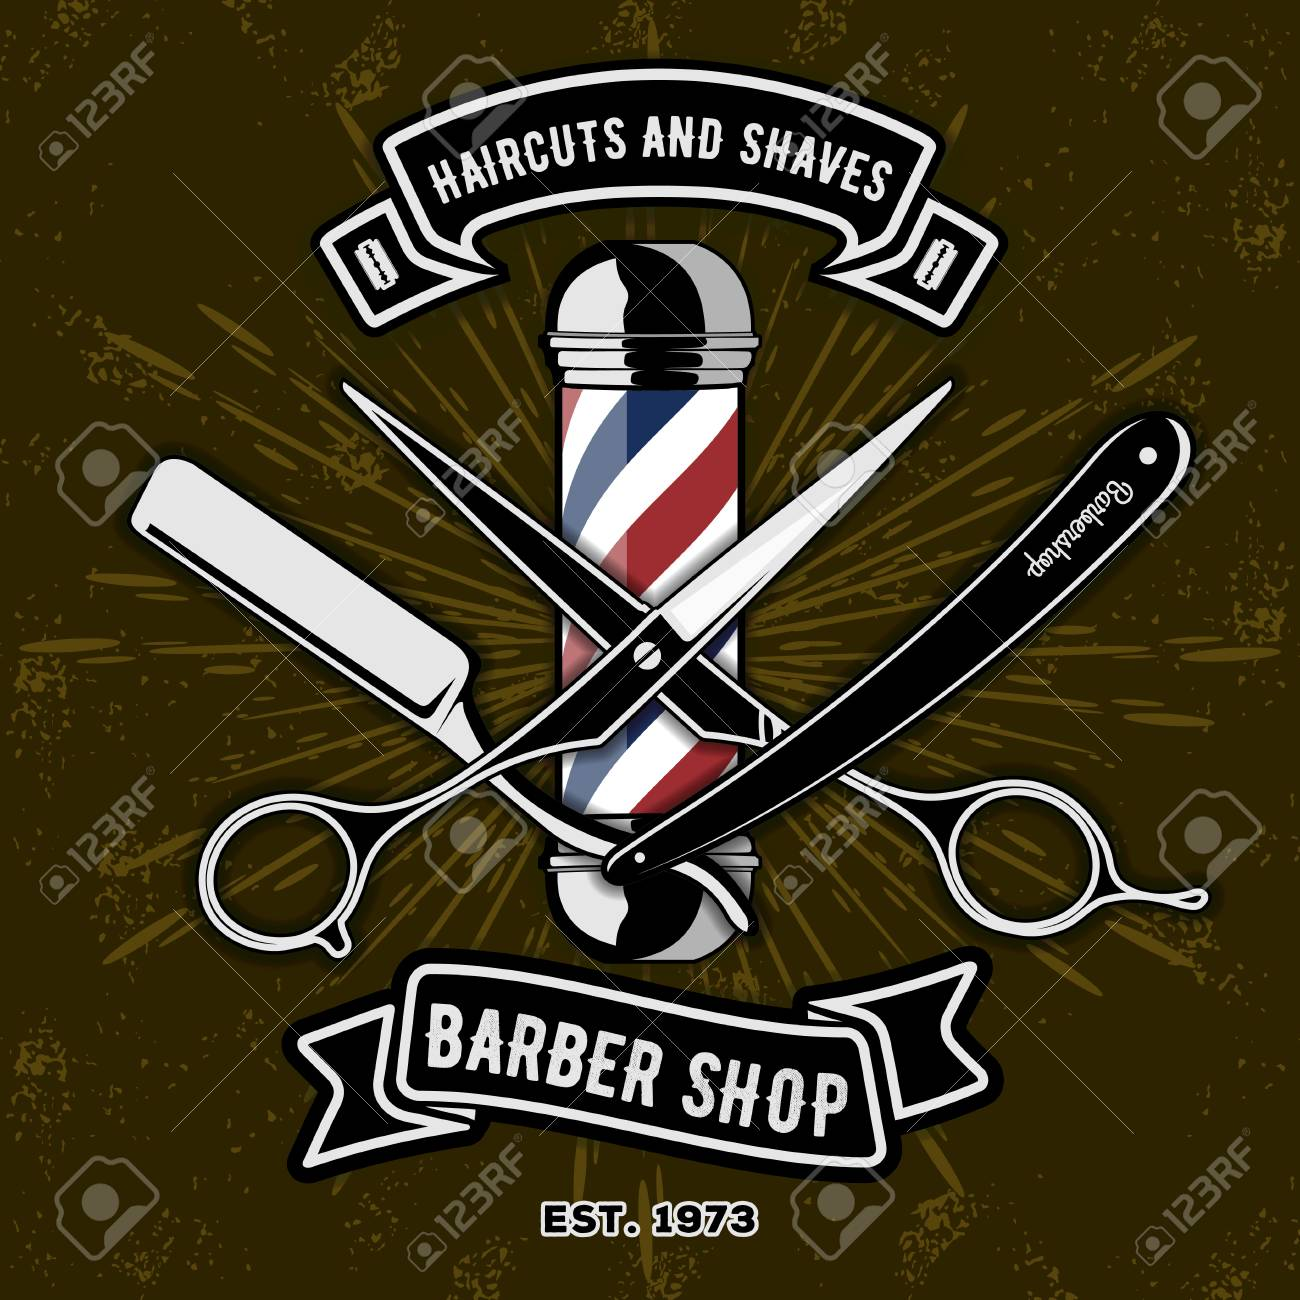 Barber Shop Logo with barber pole in vintage style. Vector template - 107320724